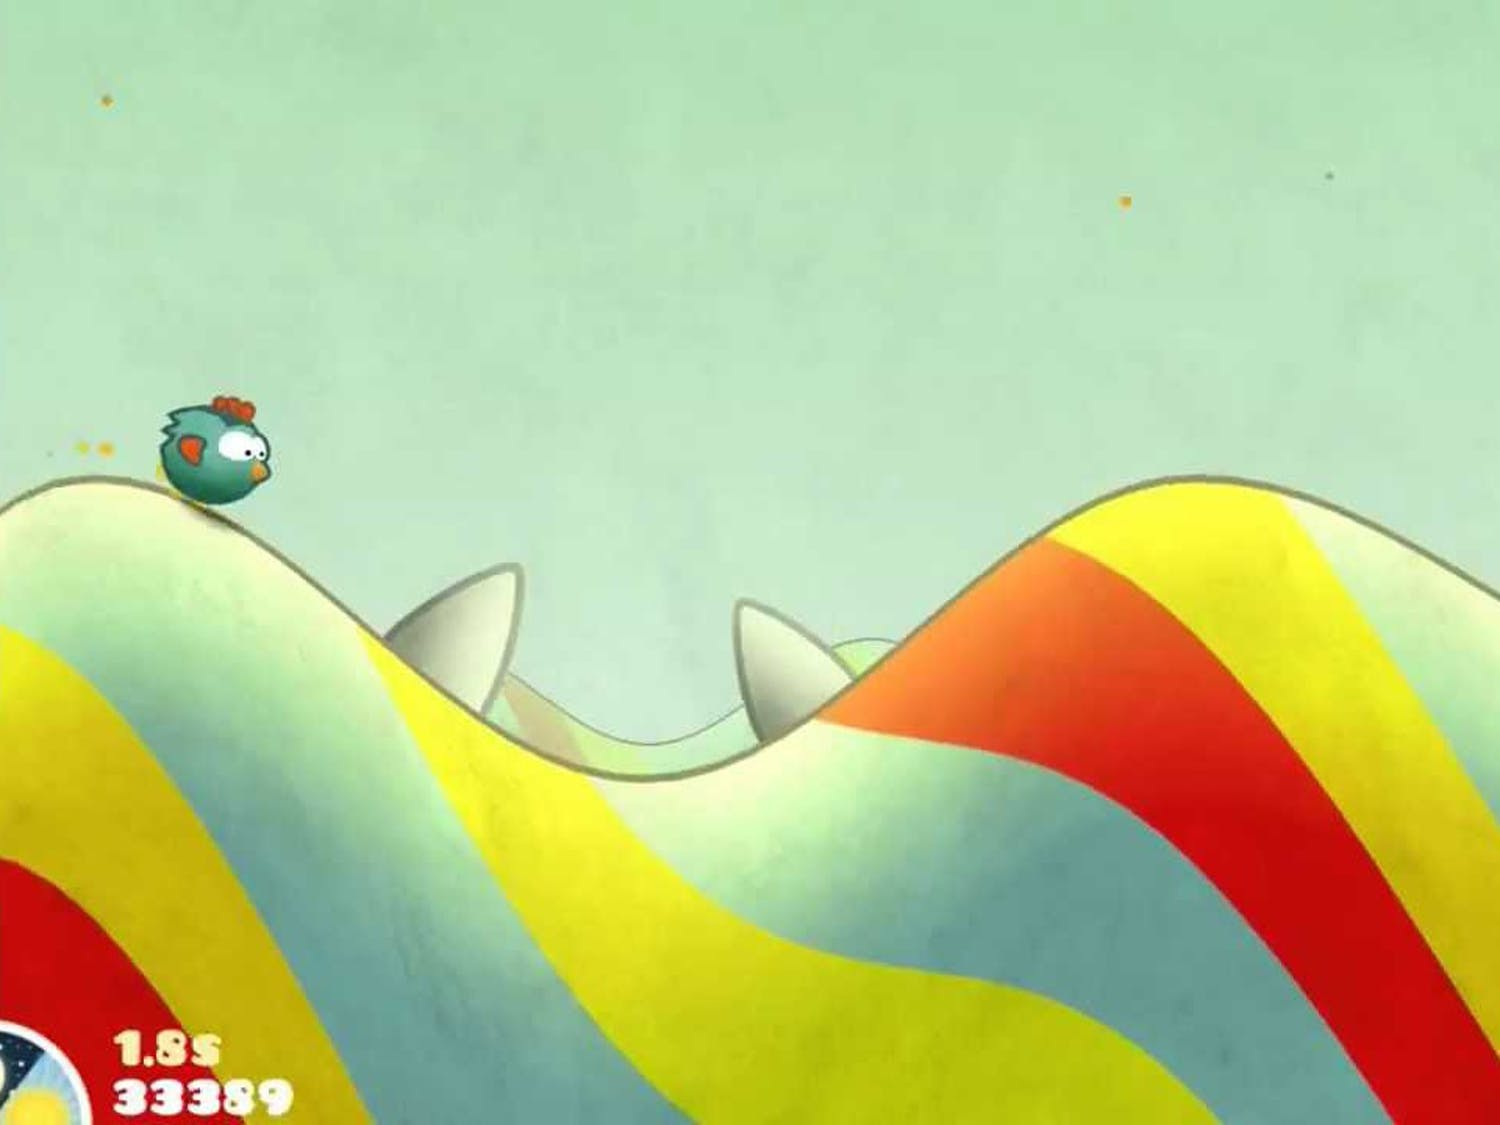 """Released in February 2011, """"Tiny Wings"""" allows the player takes control of a bird whose wings are too small to fly."""